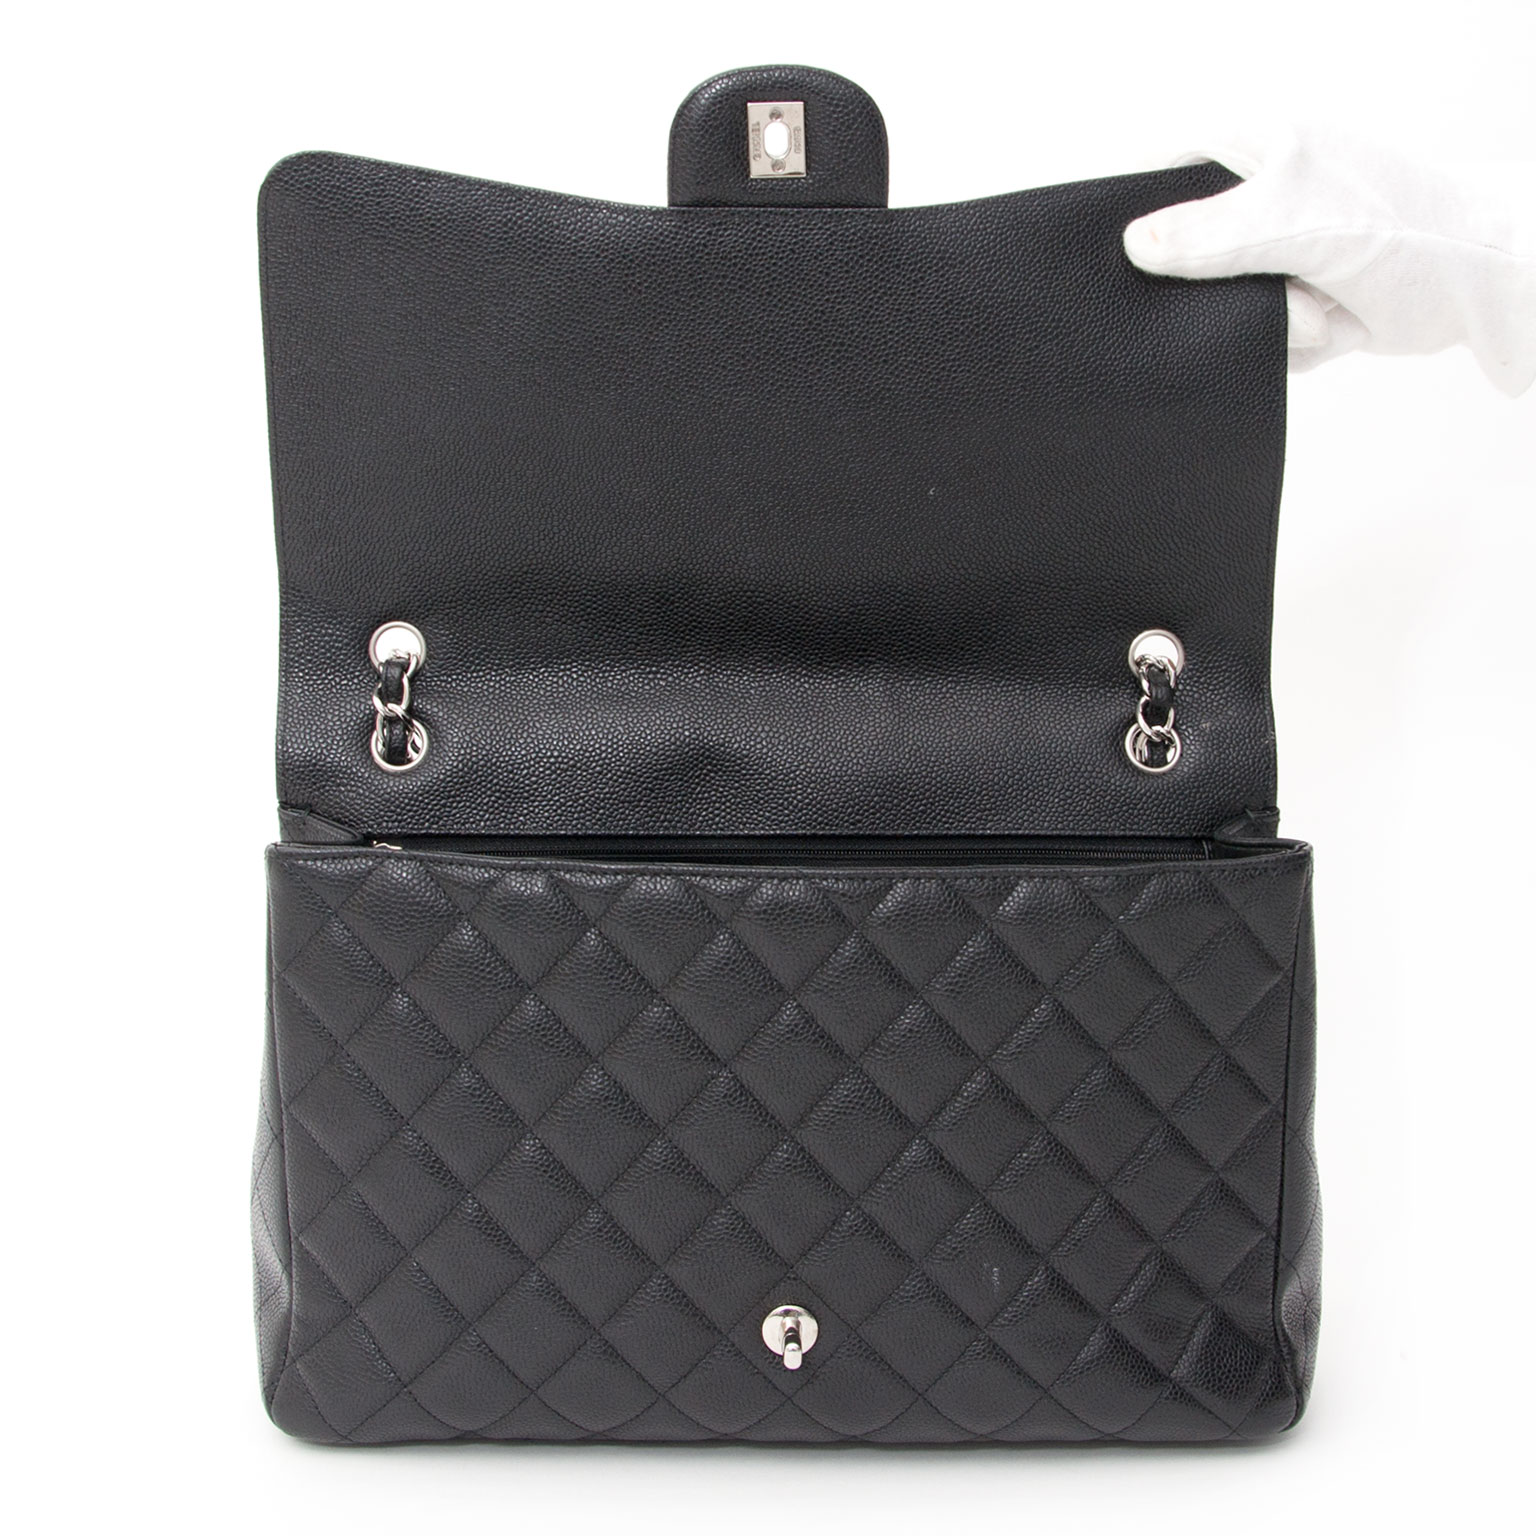 3a50eae96fa7 buy safe online secondhand designer chanel maxi classic single flap bacl  best price worldwide shipping acheter en ligne seconde main sac a main  chanel Maxi ...